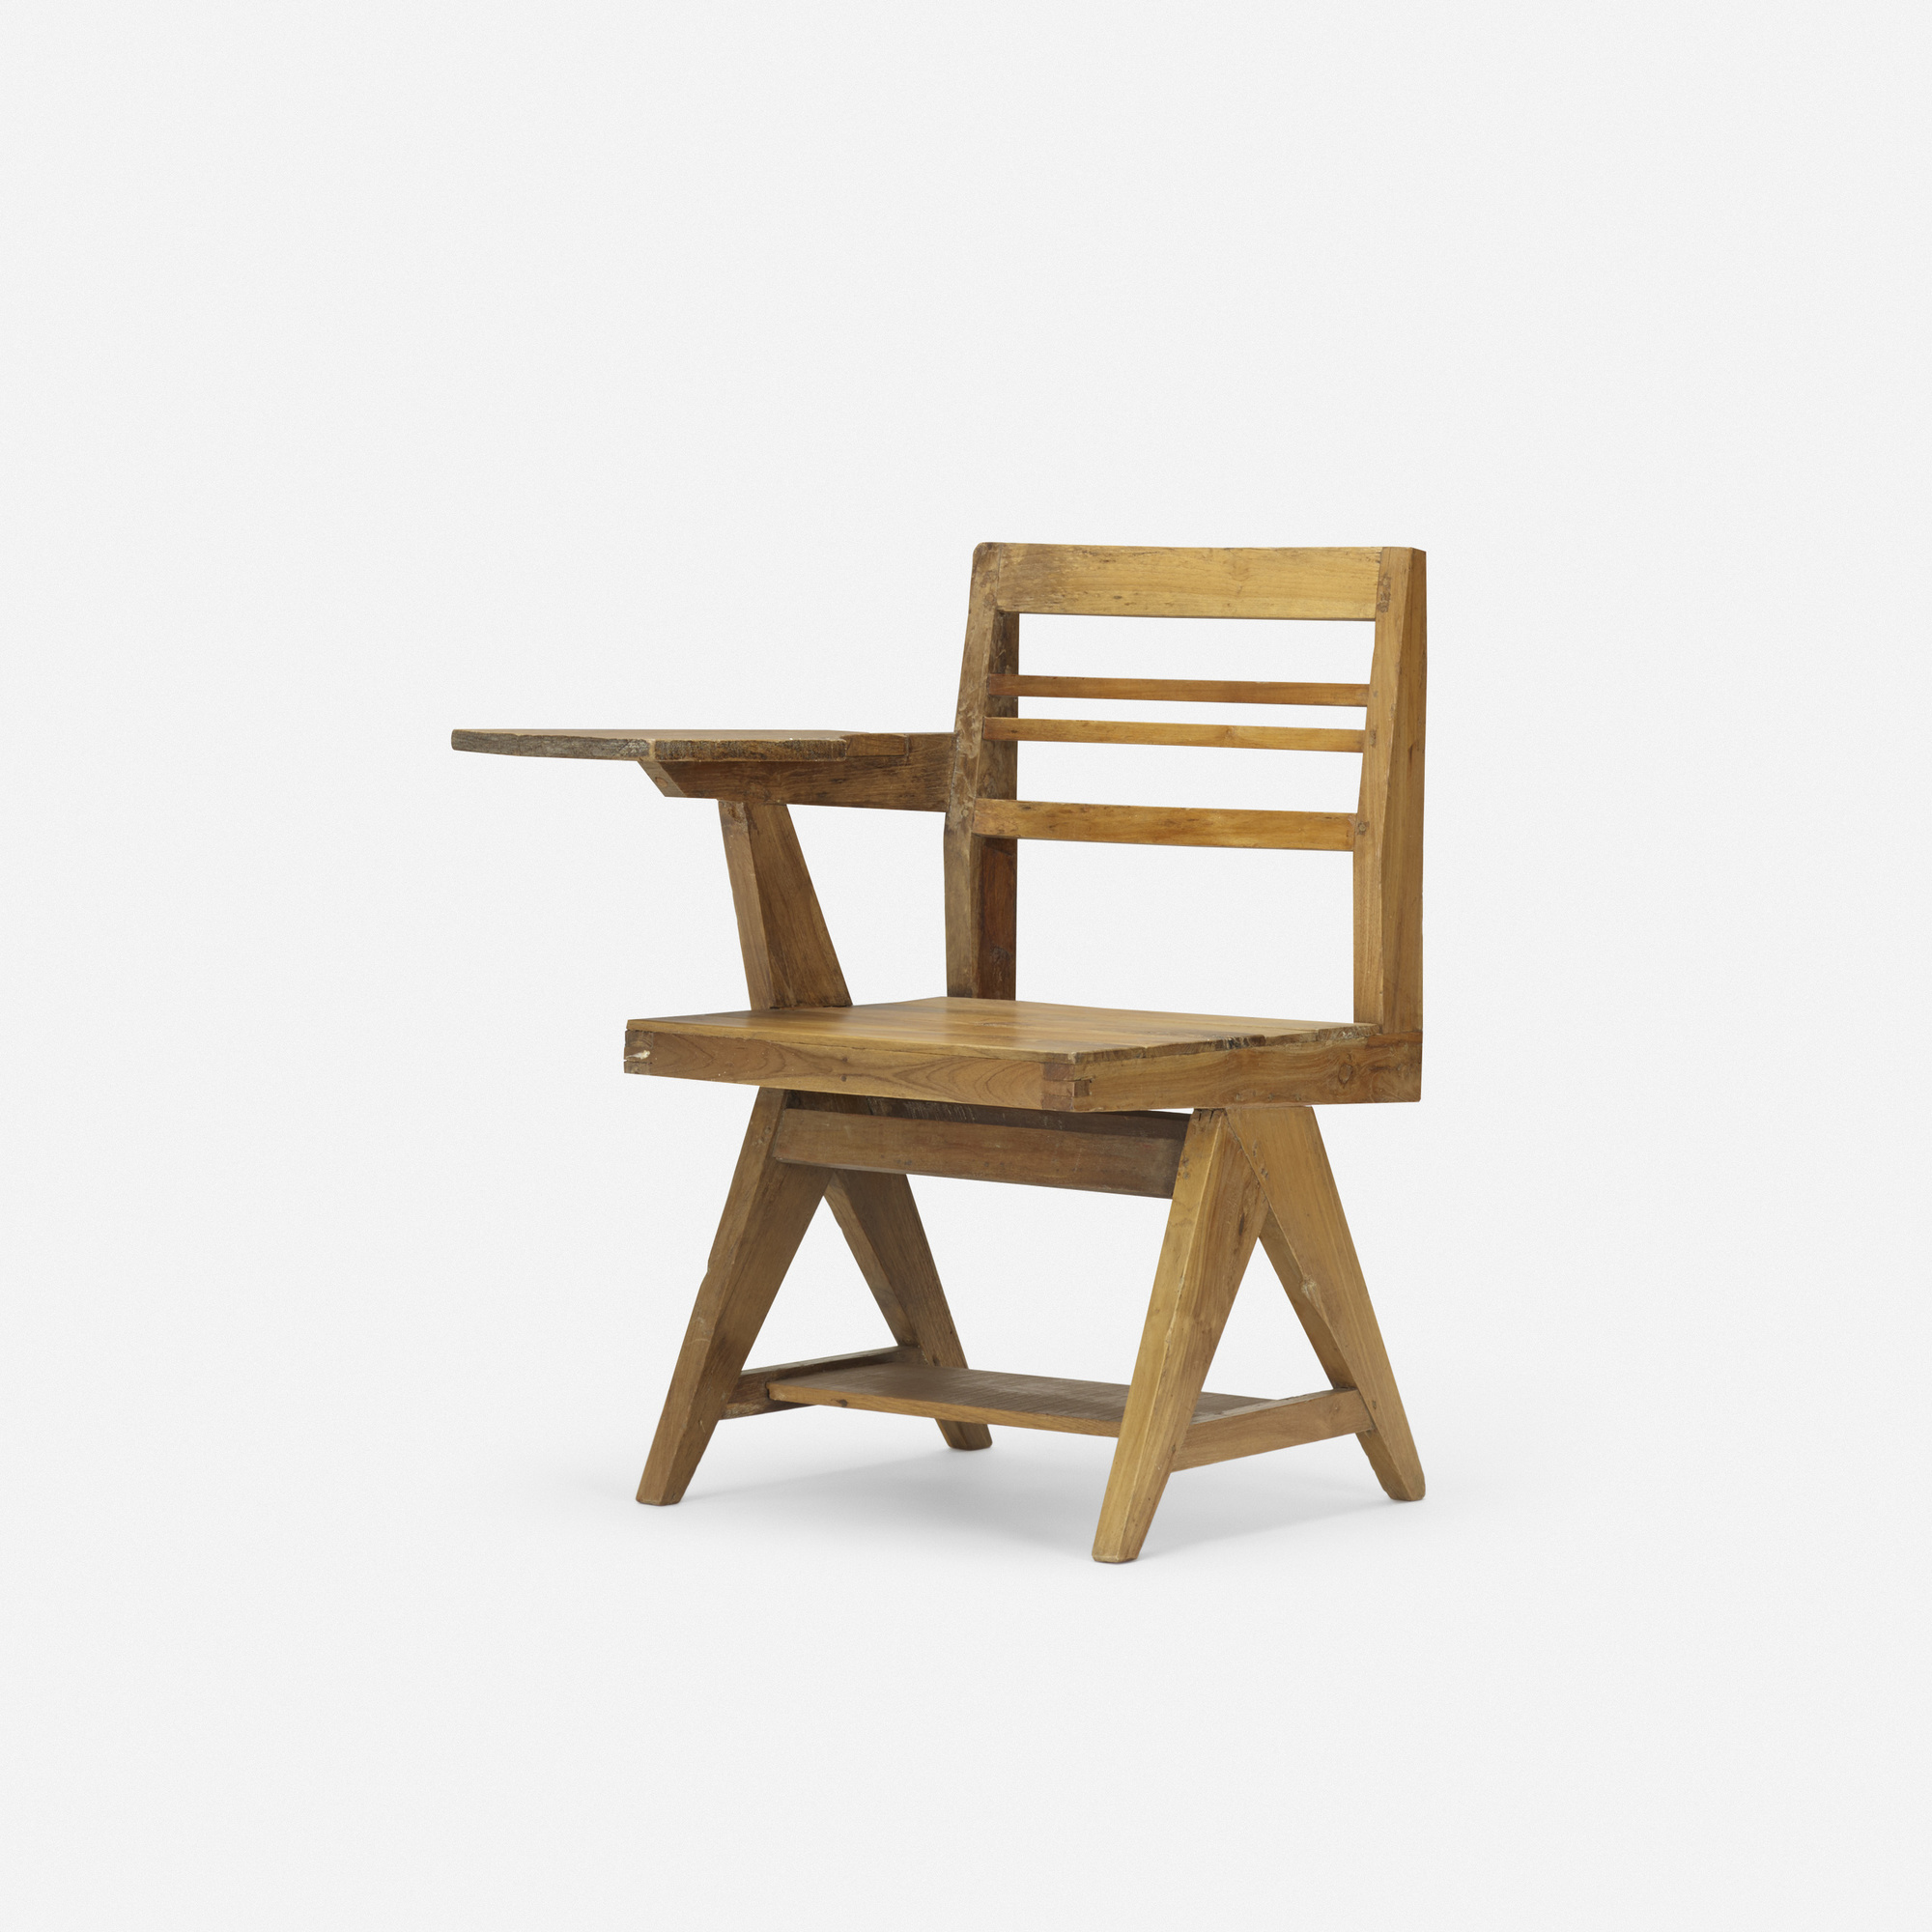 123: Pierre Jeanneret / Writing Chair From Punjab University, Chandigarh (1  Of 3